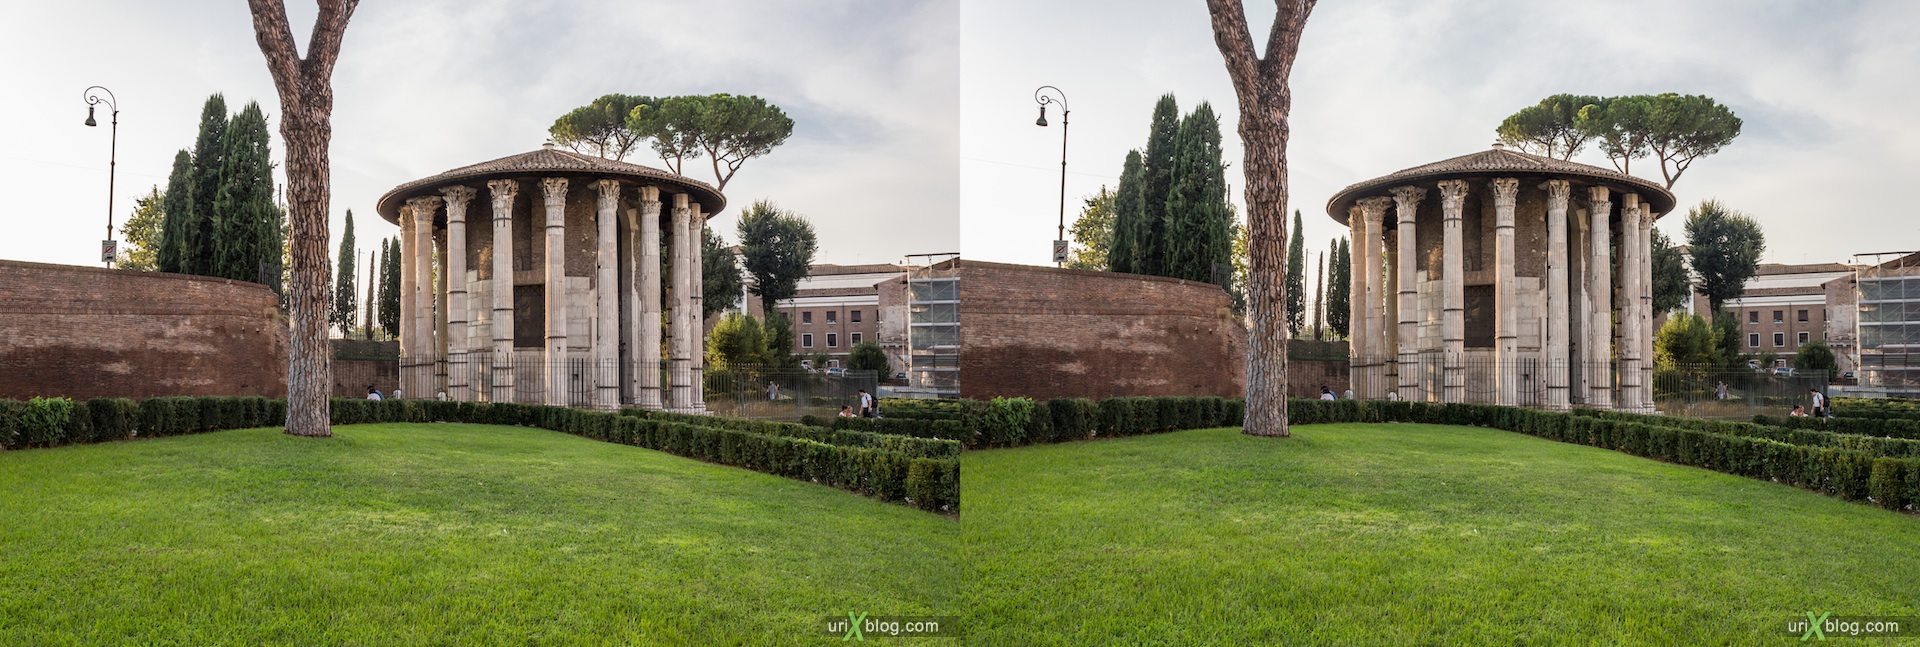 2012, Temple of Hercules Victor, Forum Boarium, 3D, stereo pair, cross-eyed, crossview, cross view stereo pair